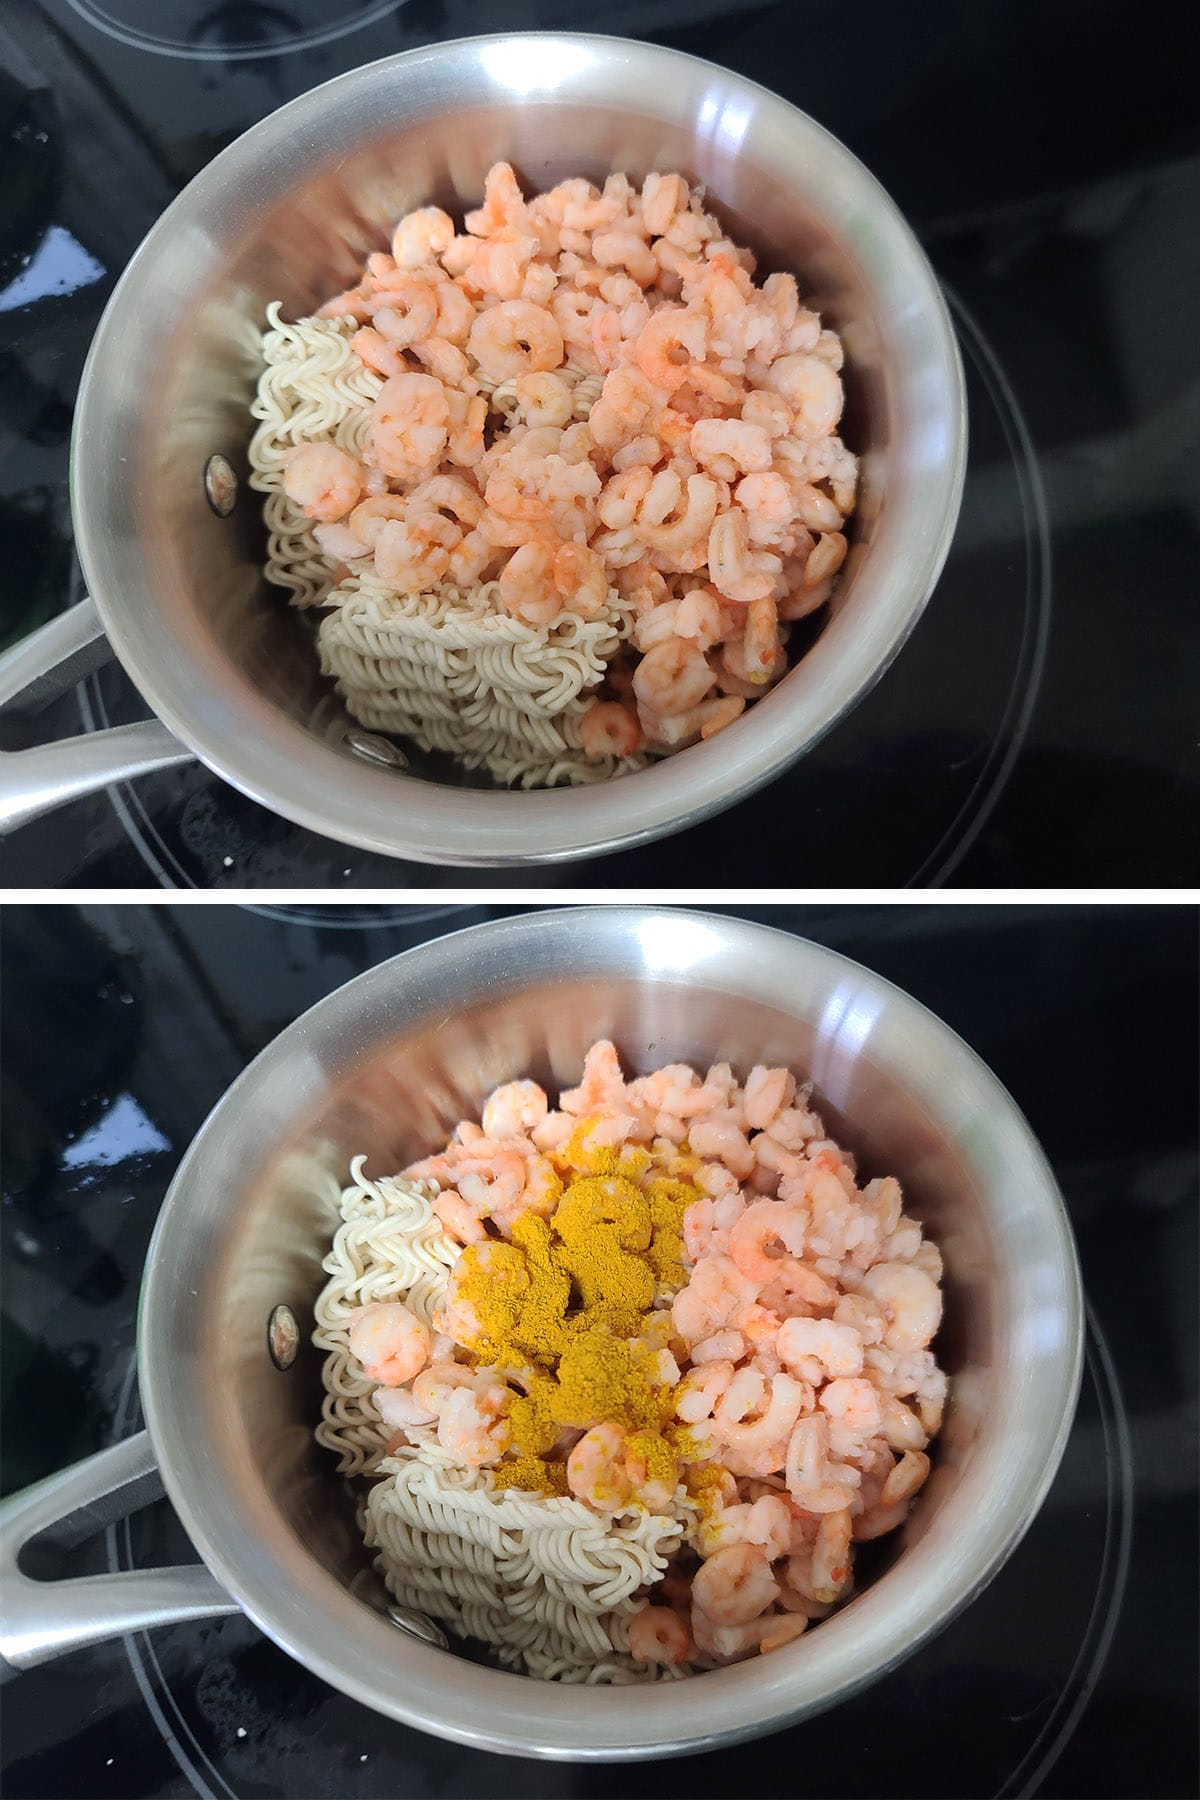 Shrimp, flavouring powder, and curry are added to the pot.